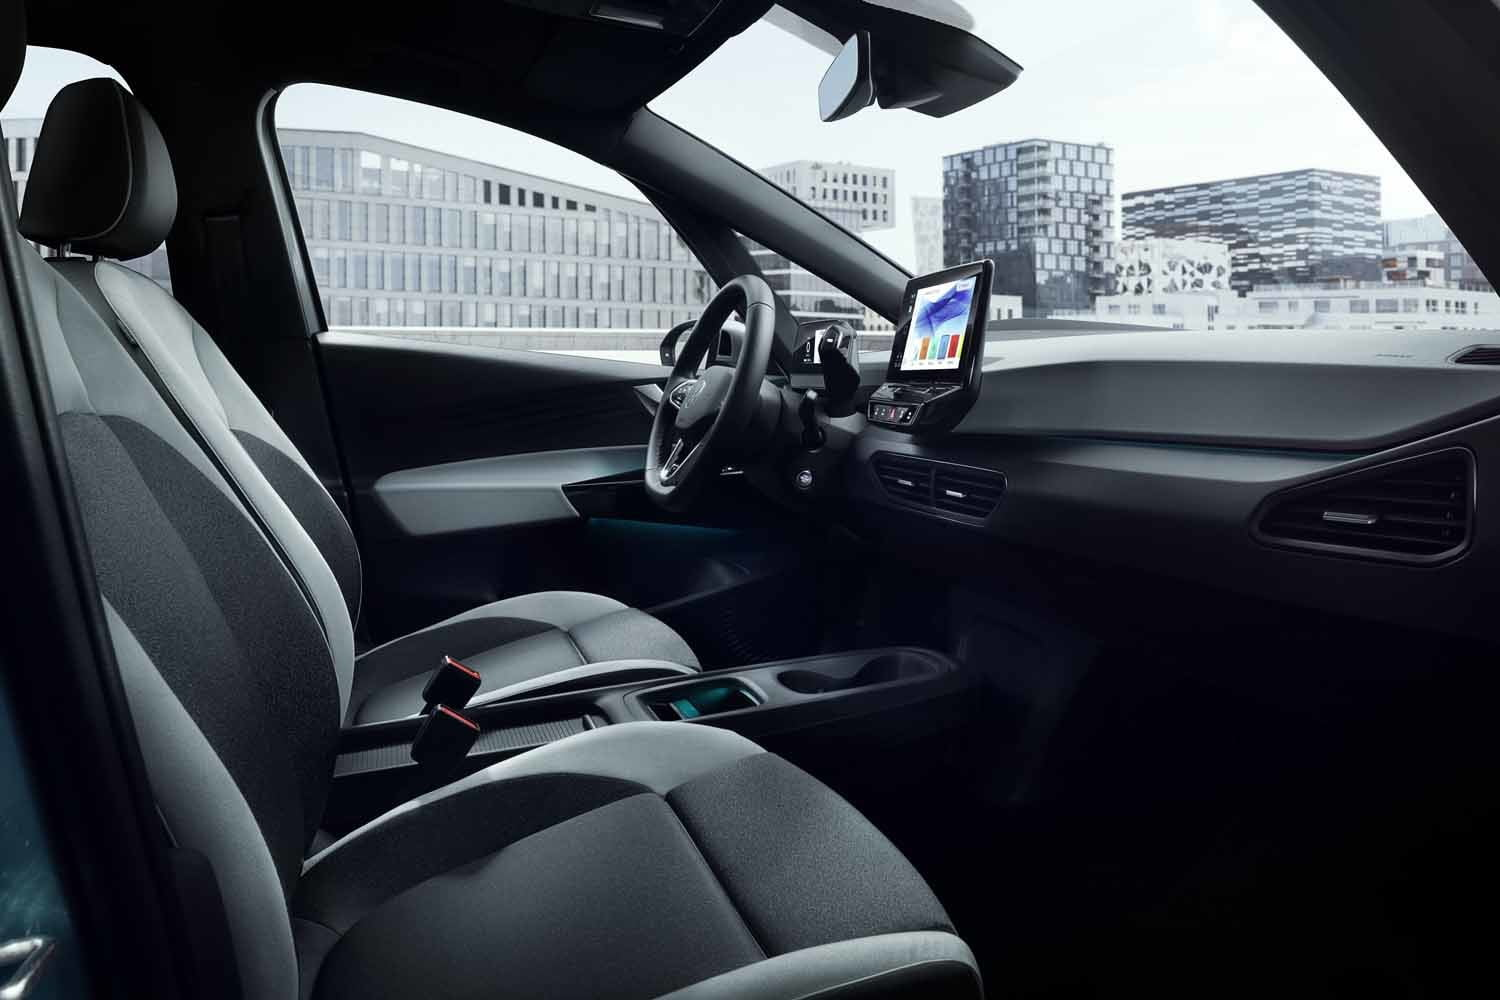 2020 volkswagen id 3 electric car orders open first edition detailed vw official 10